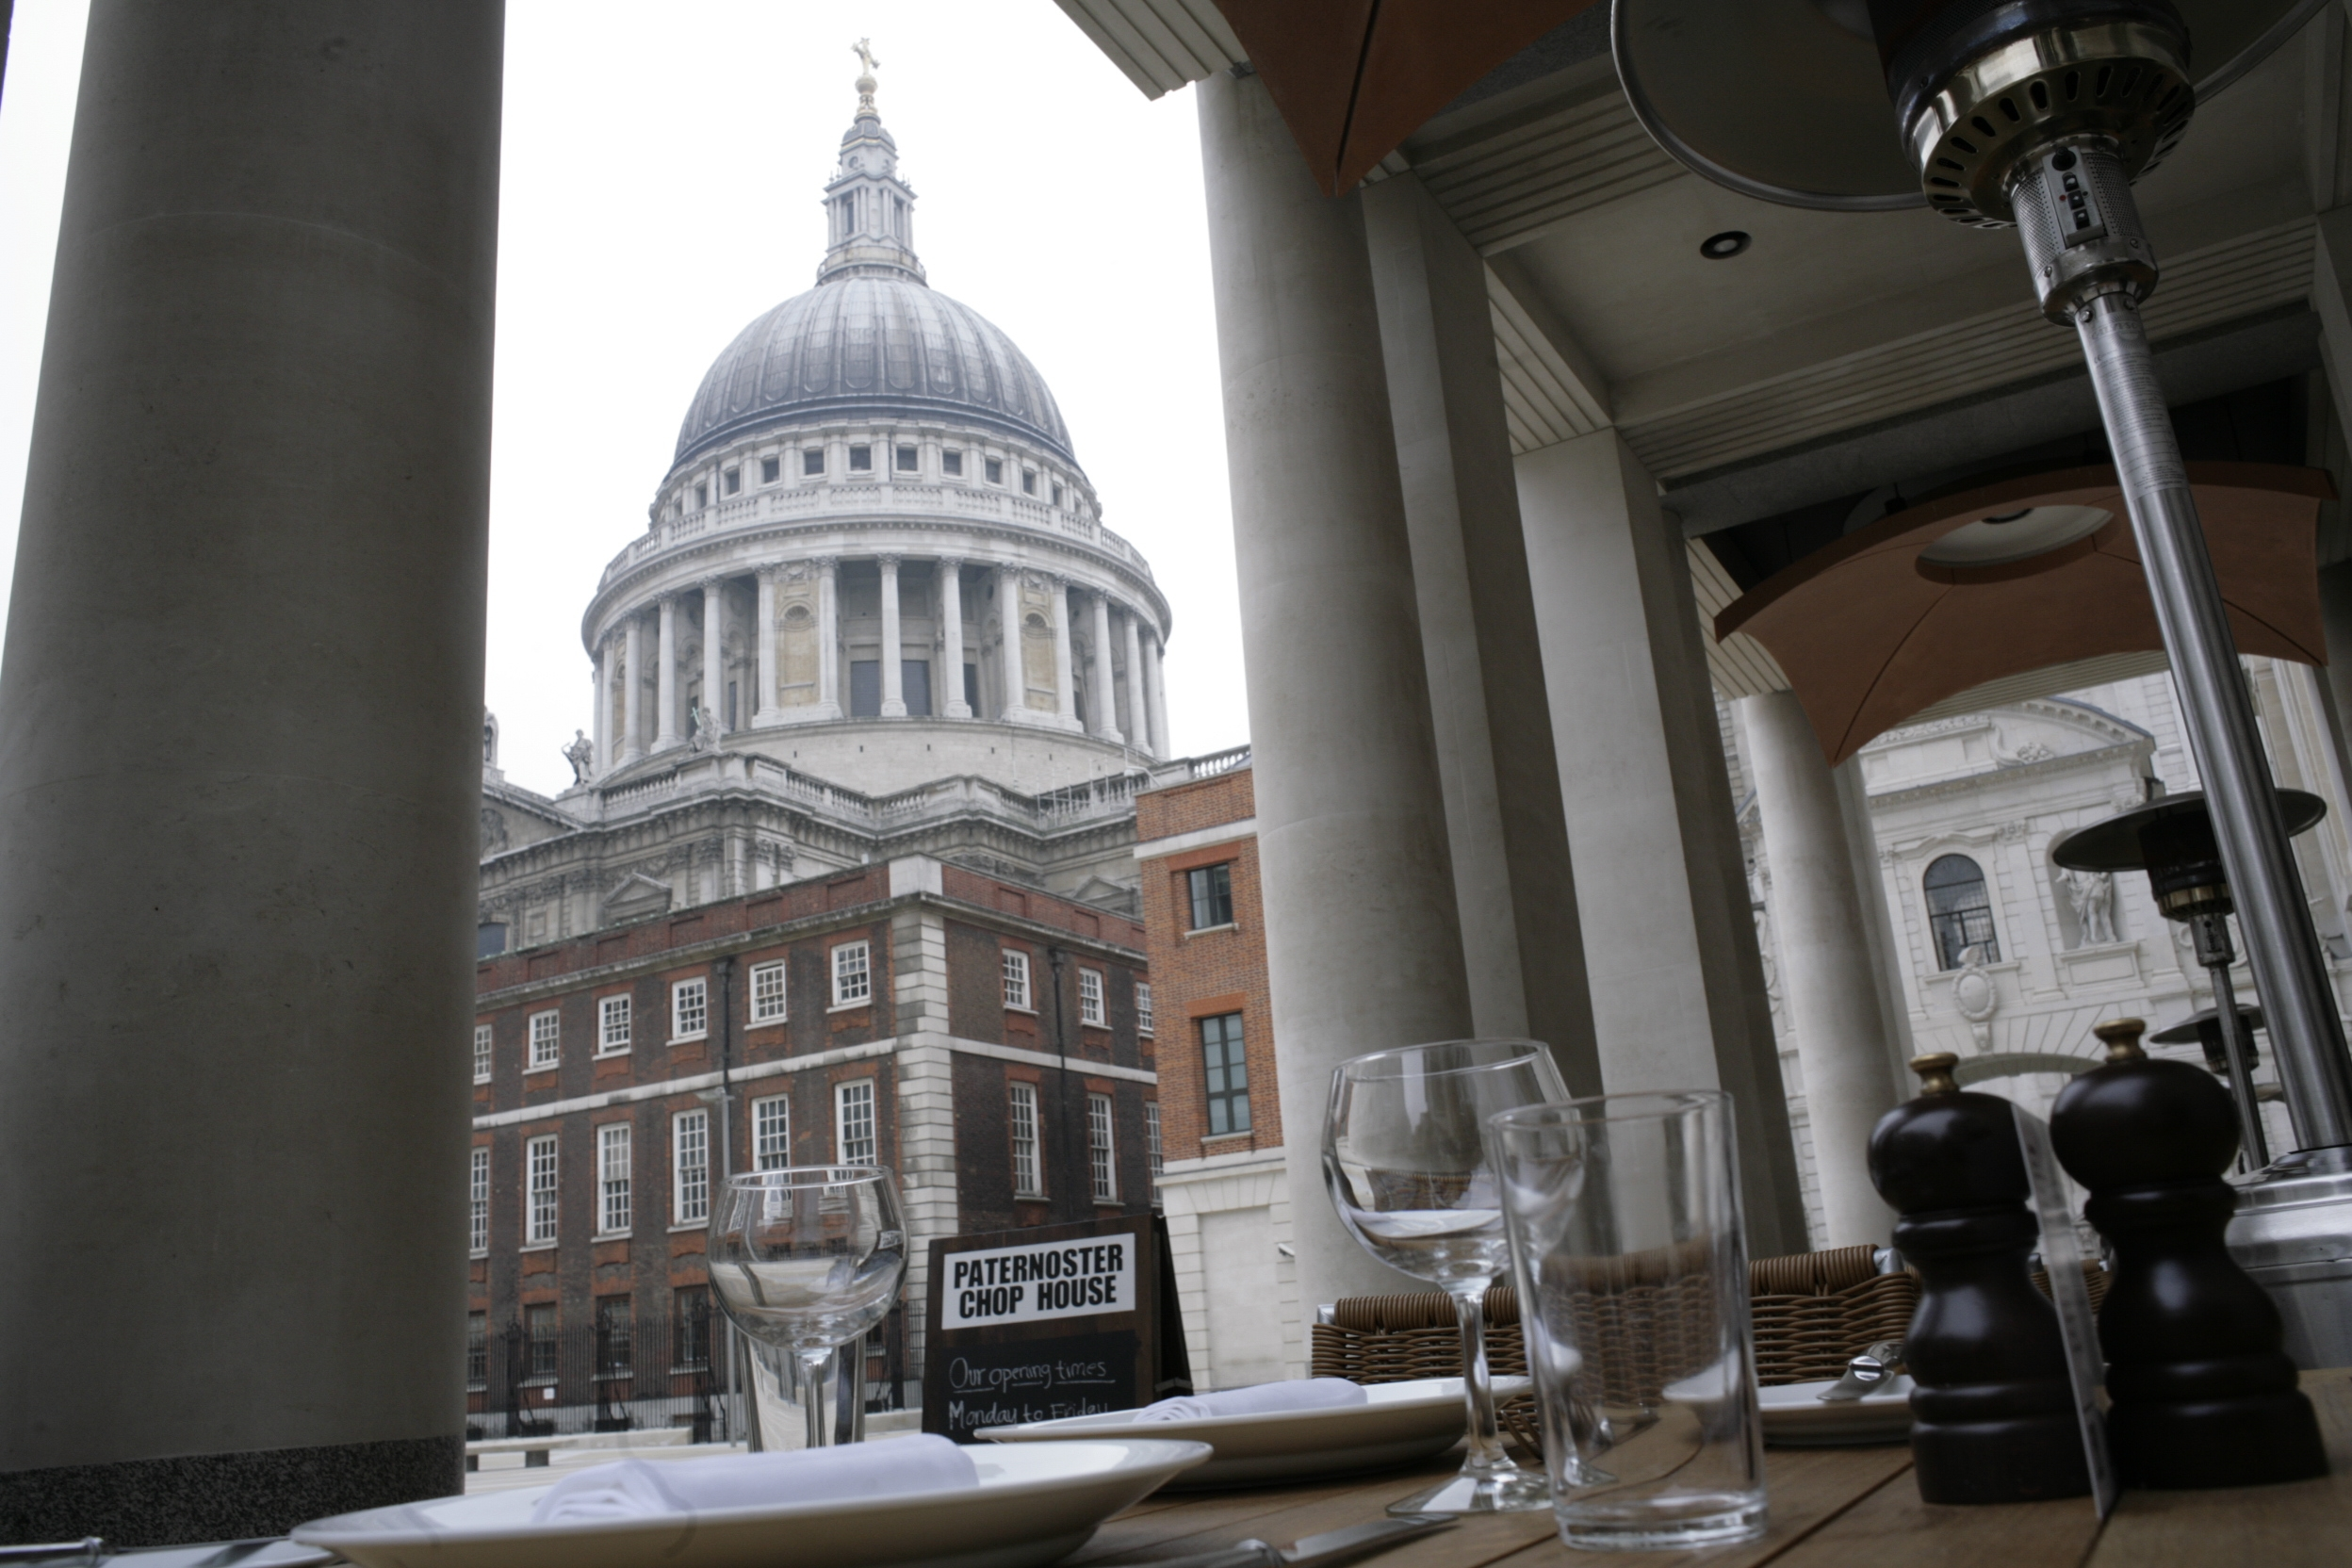 Paternoster Chop House - London